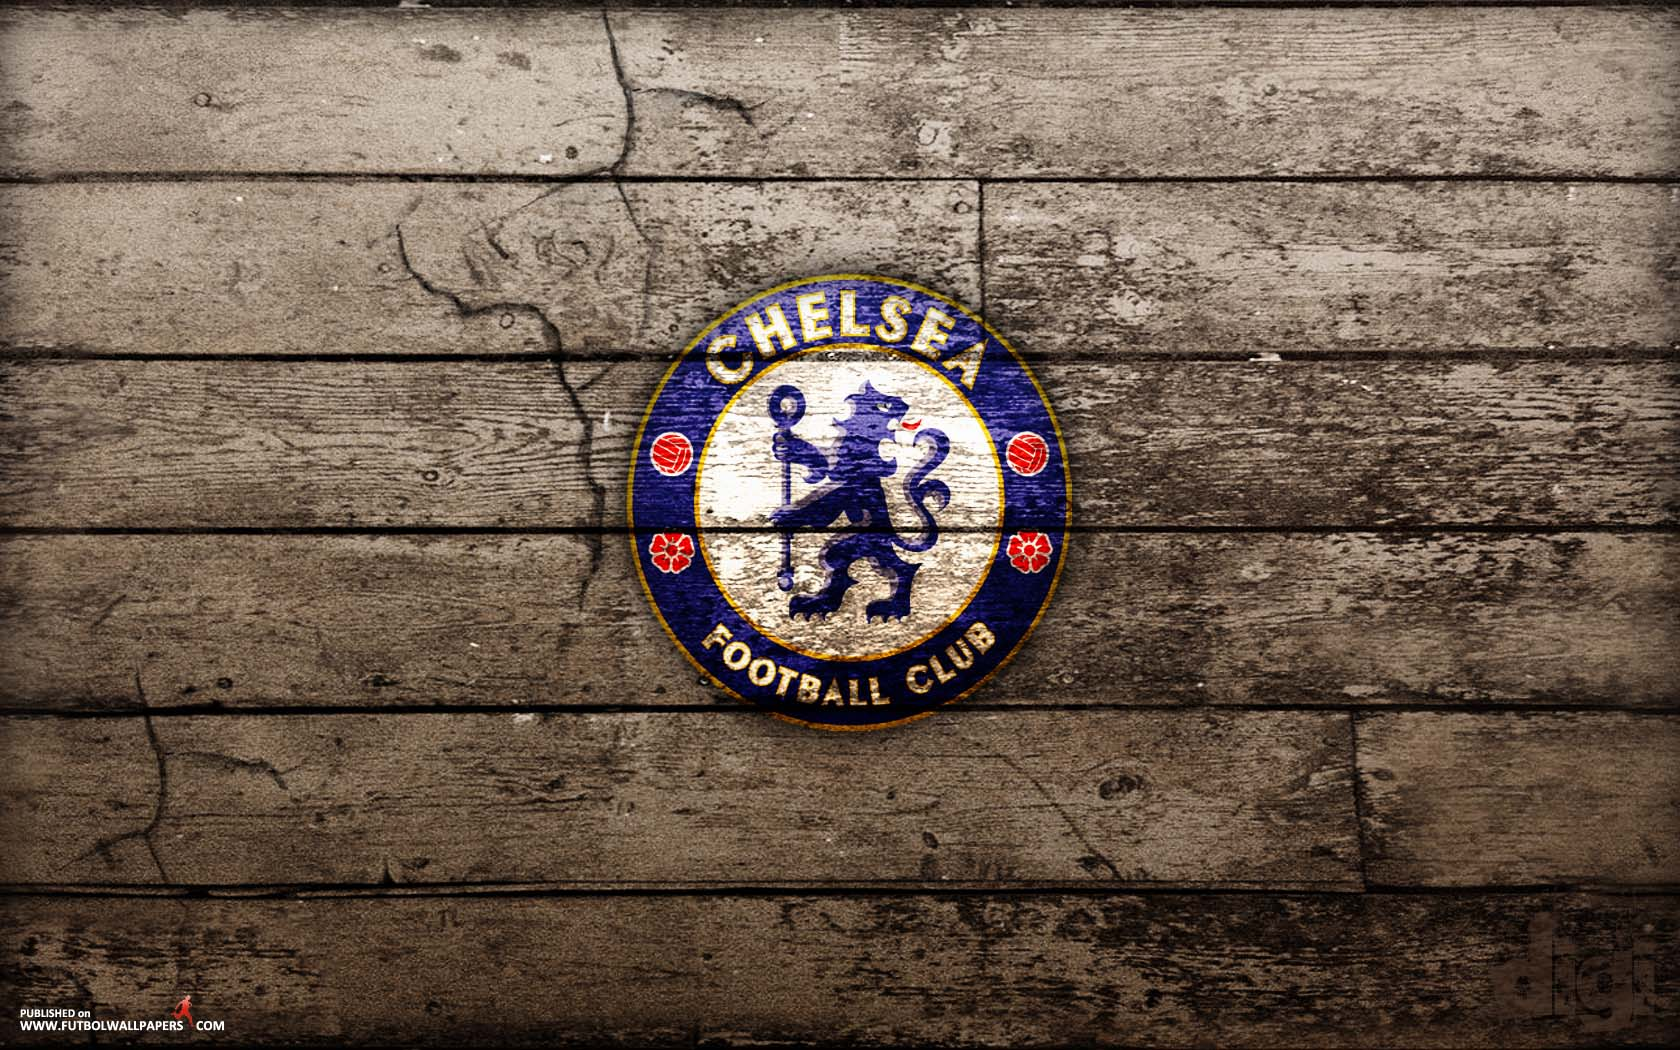 Chelsea Fc Wallpaper 13 Football Wallpapers Pictures 1680x1050px 1680x1050